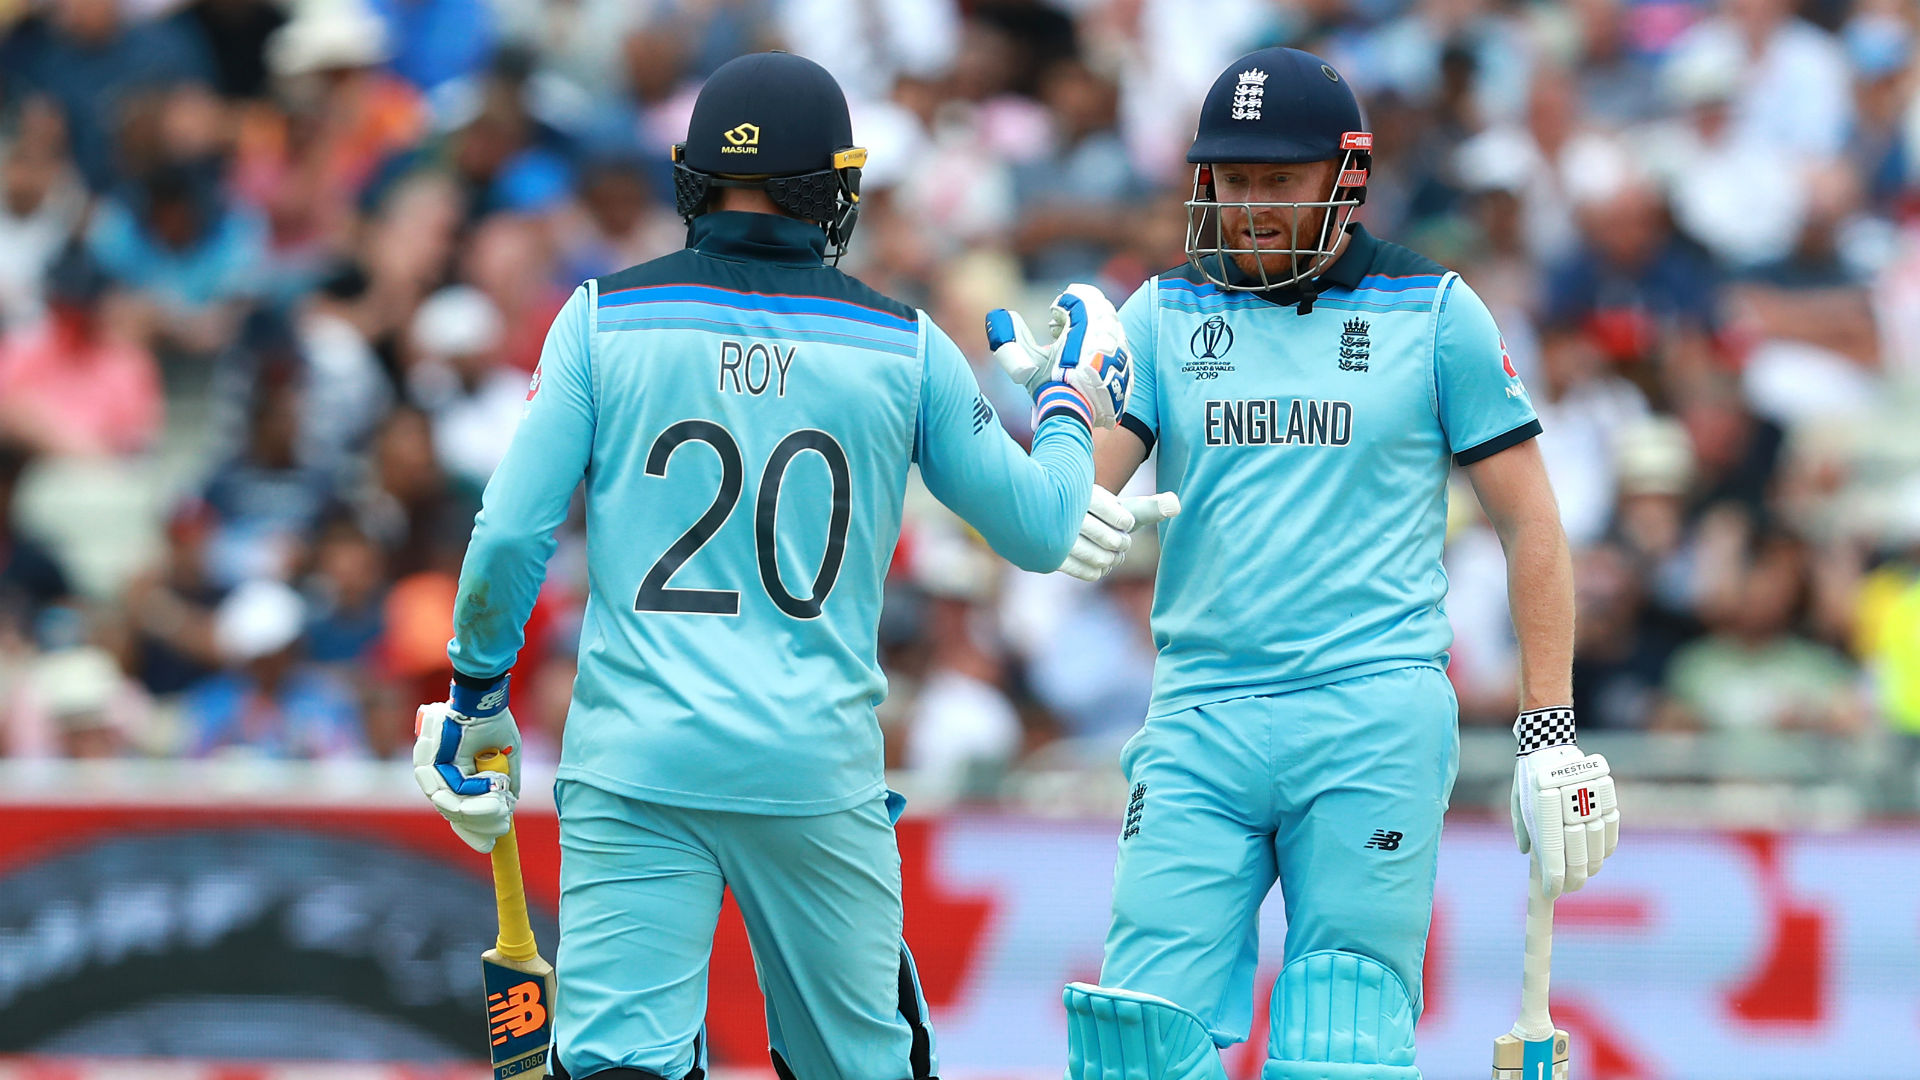 Cricket World Cup 2019: Roy and Bairstow's brilliance highlights NZ woes